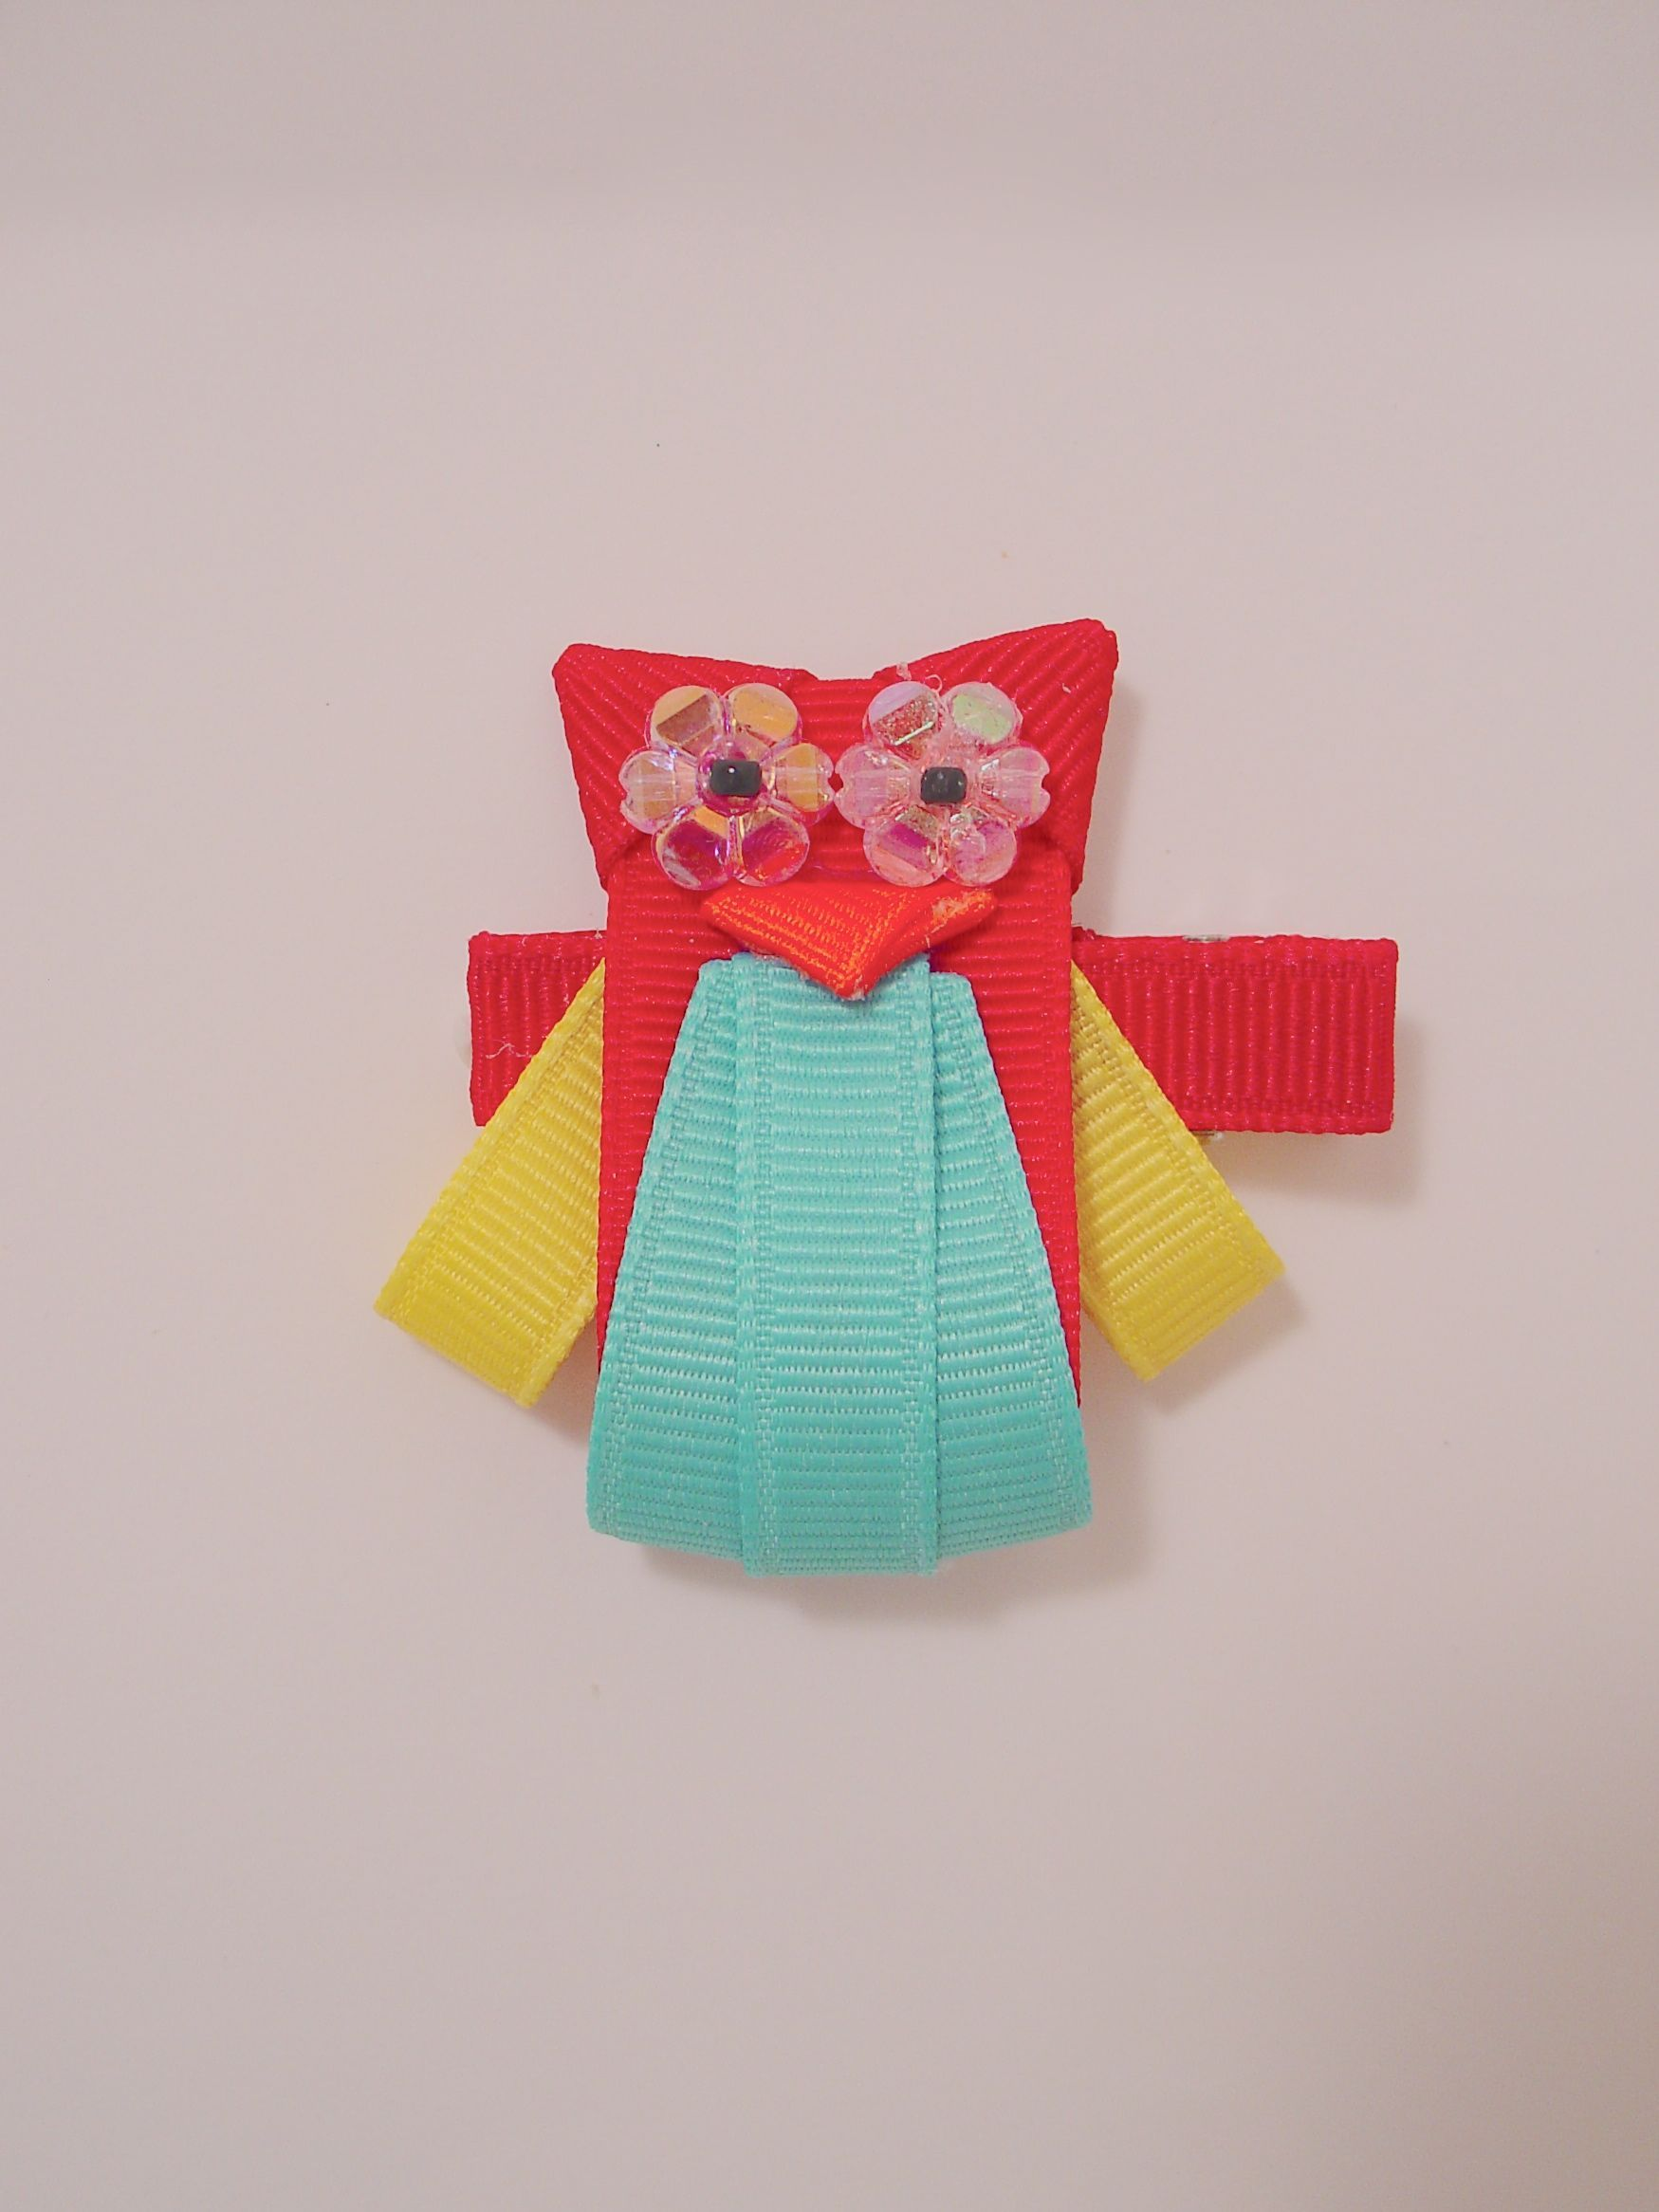 Sculptured Owl 2.0 Hair Bow.  This is my second attempt and more popular version of an owl.